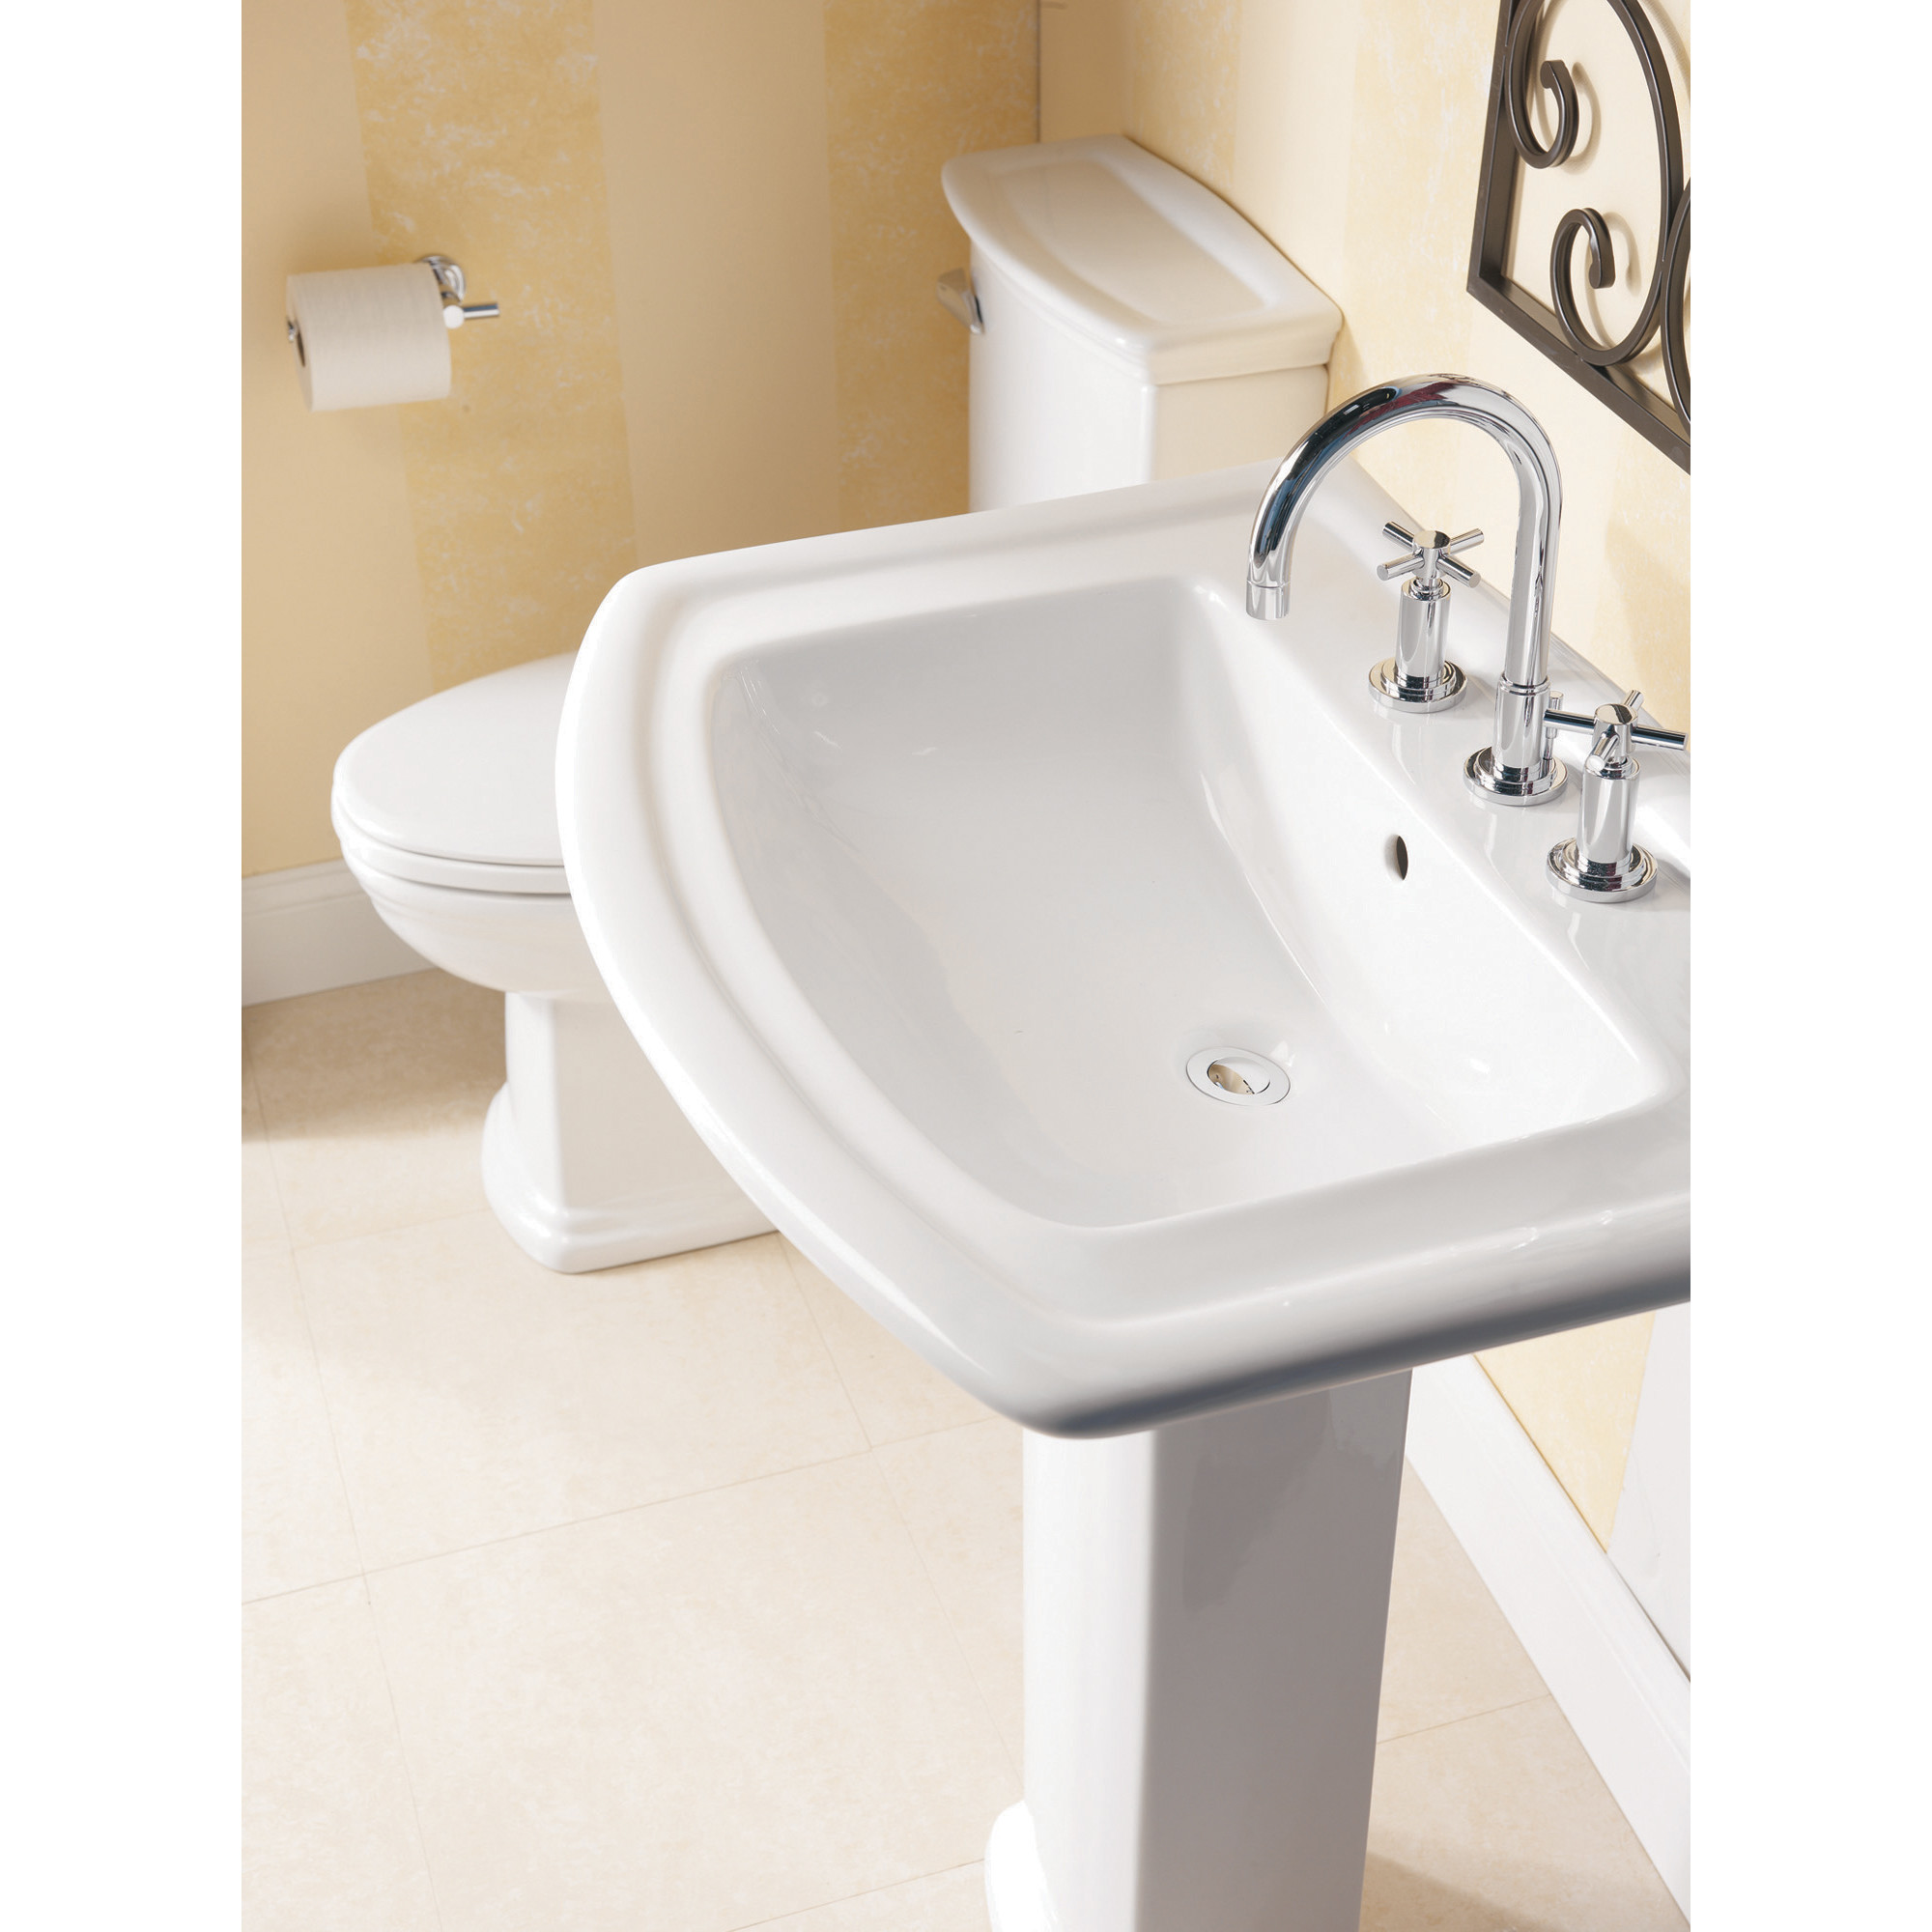 Charming mirabelle sinks with Pedestal Bathroom Sink for bathroom with mirabelle undermount sink